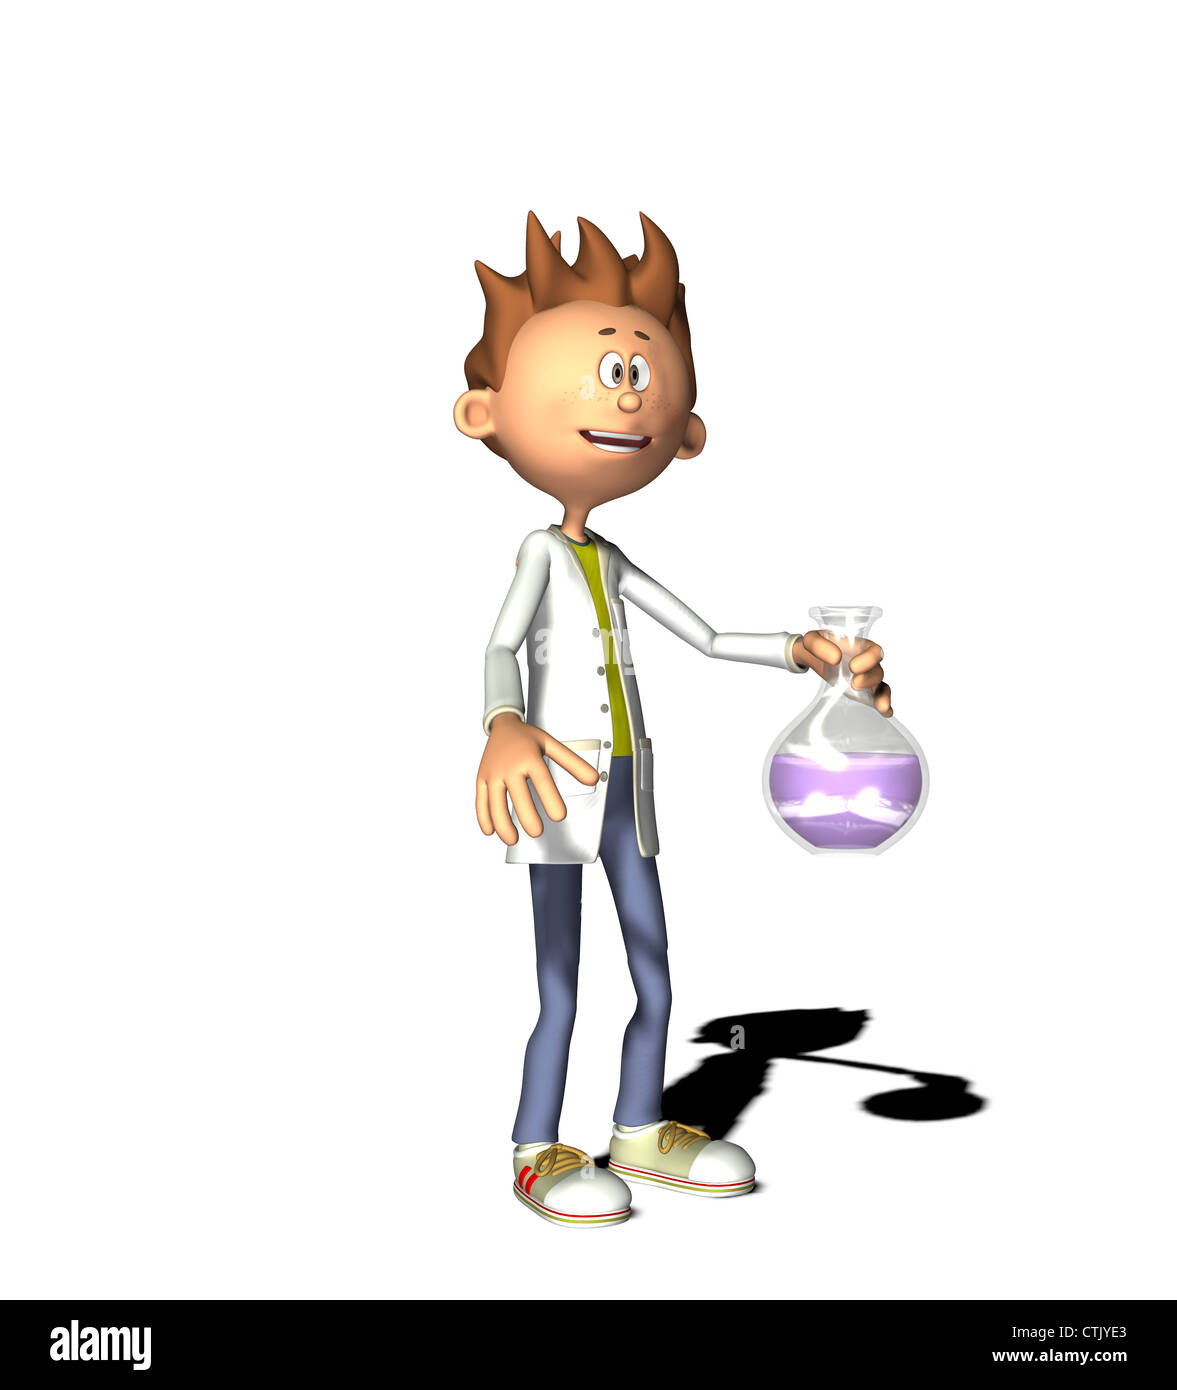 Cartoon-Figur-ChemikerStockfoto